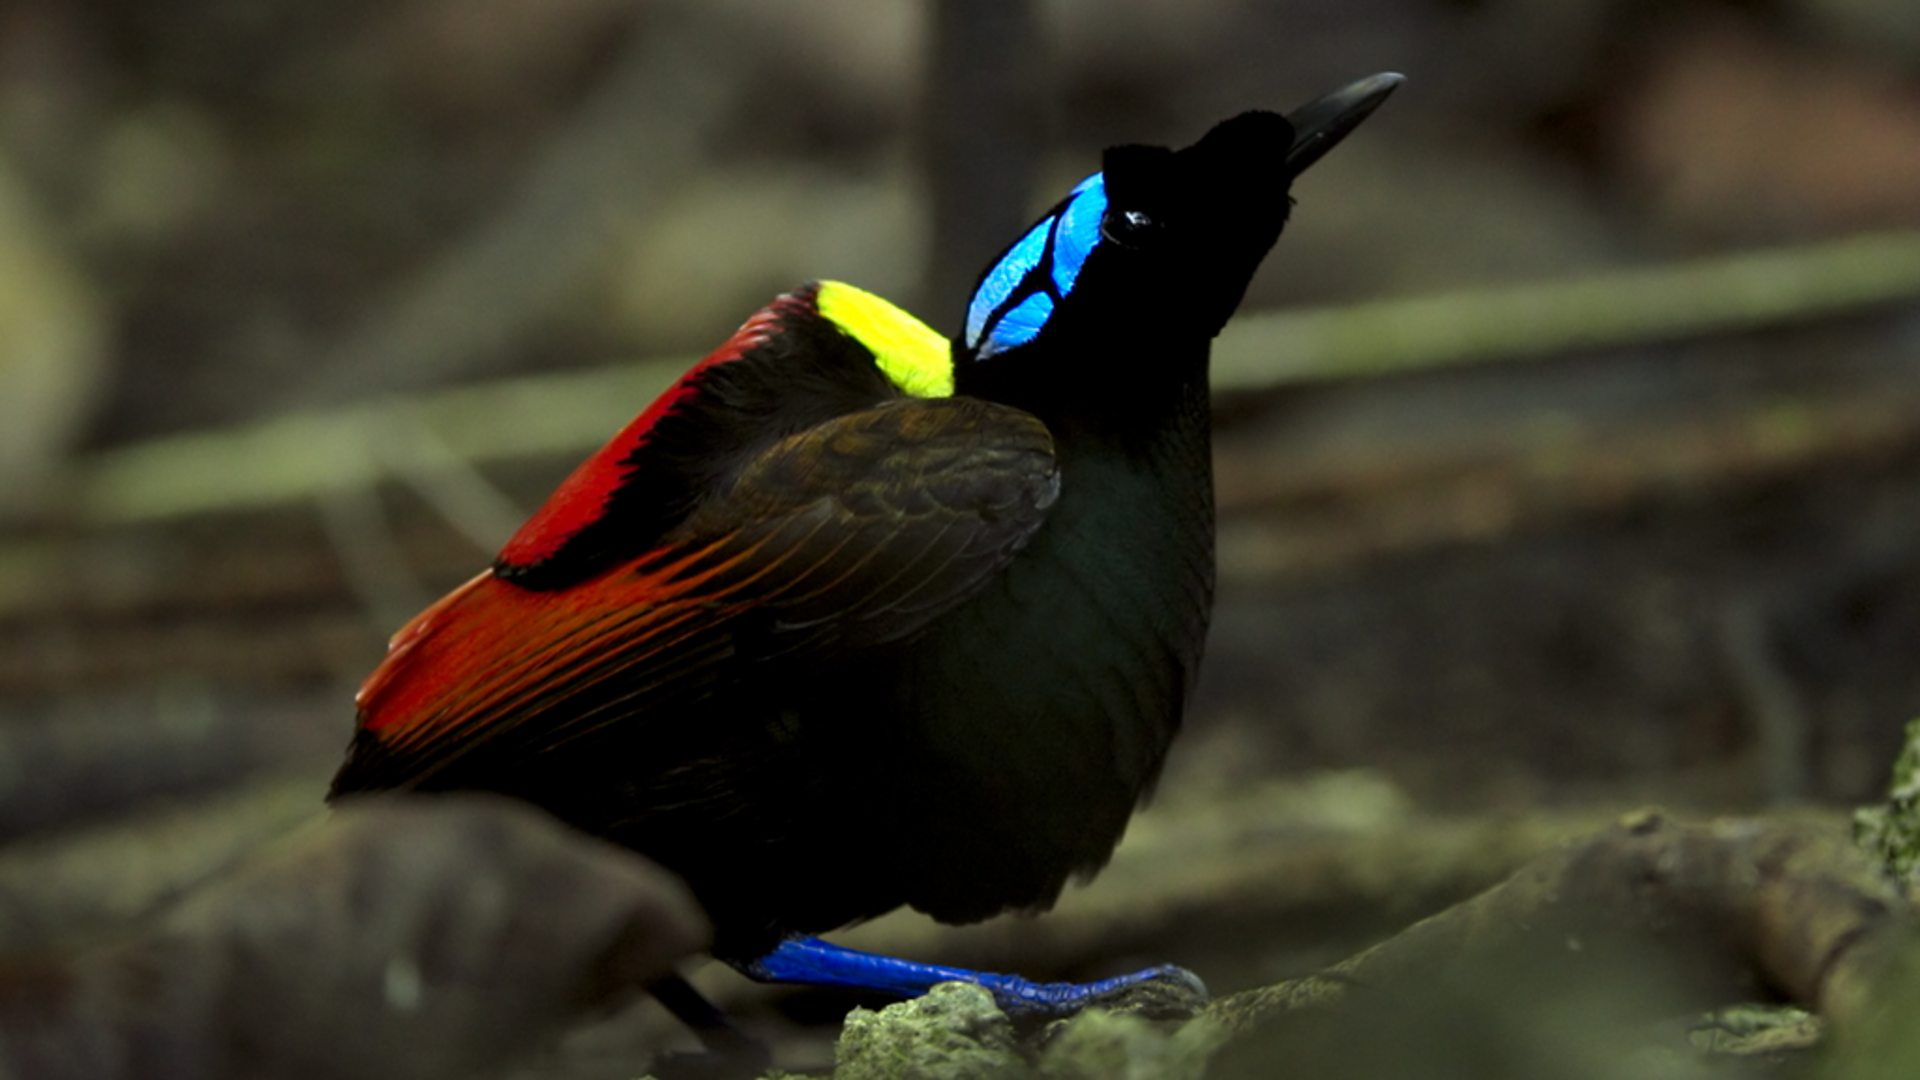 BBC One - Planet Earth II - Bird of paradise – a new perspective